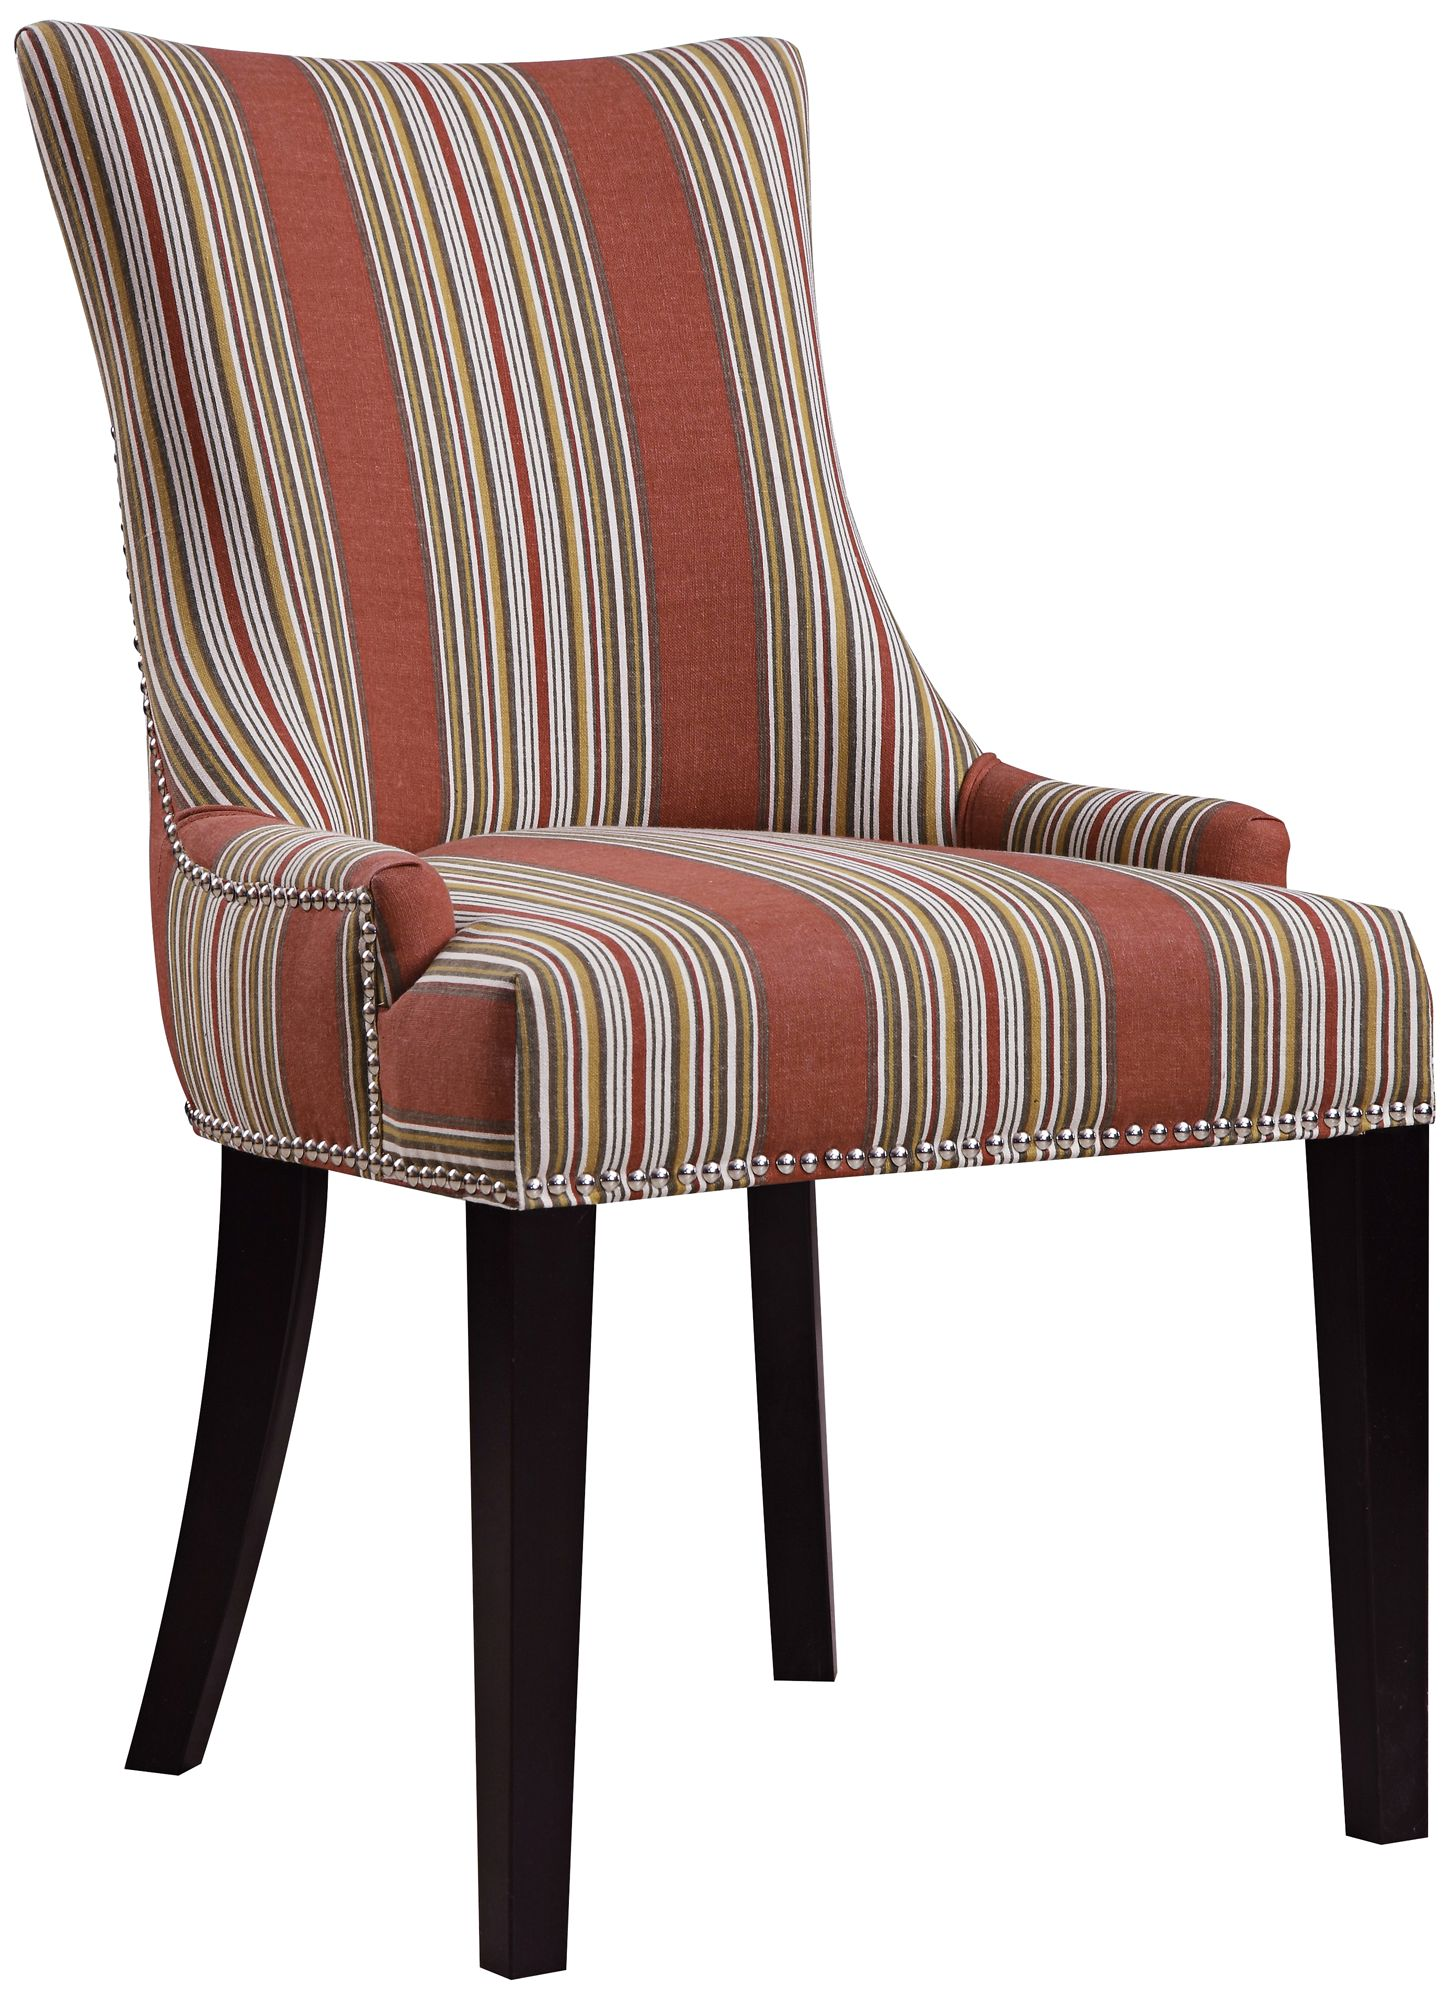 striped dining chair unique chairs for bedrooms oberon bourbon imperial sienna 9k659 lamps plus